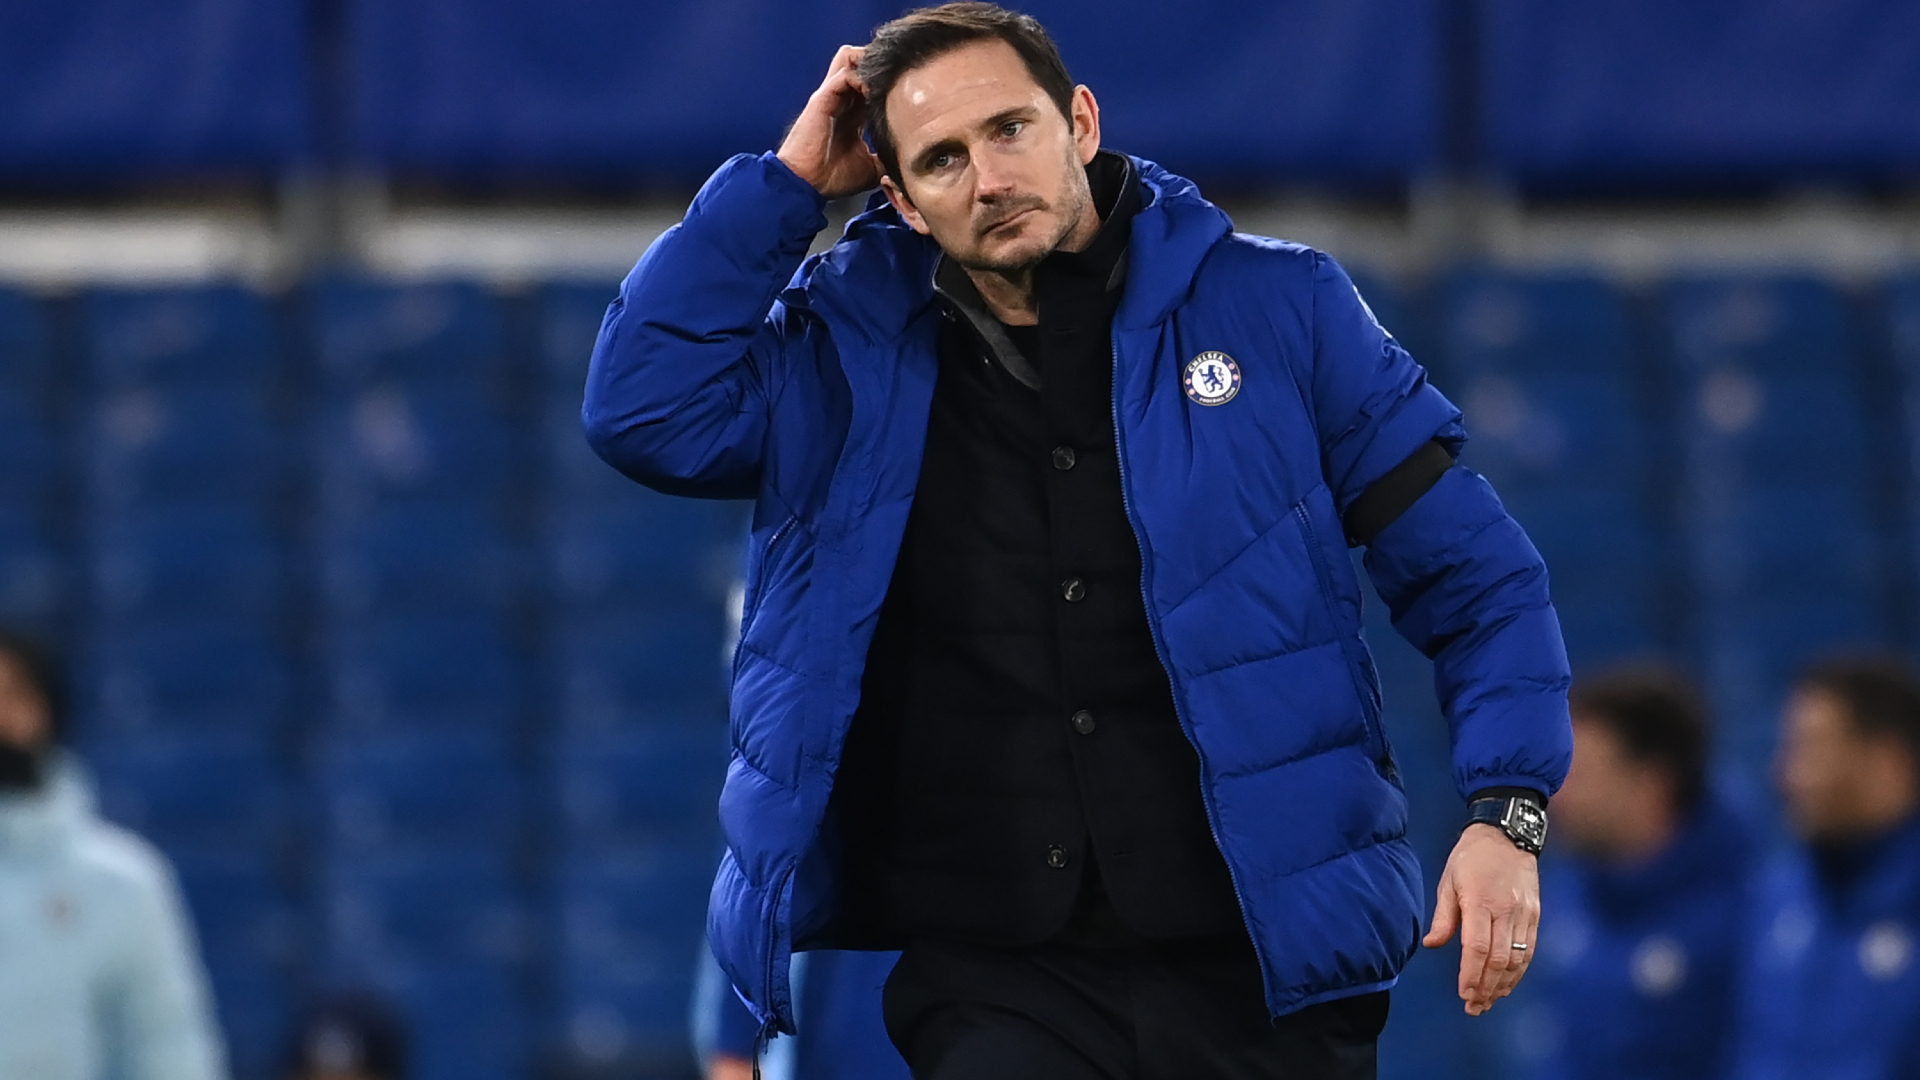 'We love you but we love Chelsea even more' - Nigeria fans react to Lampard dismissal